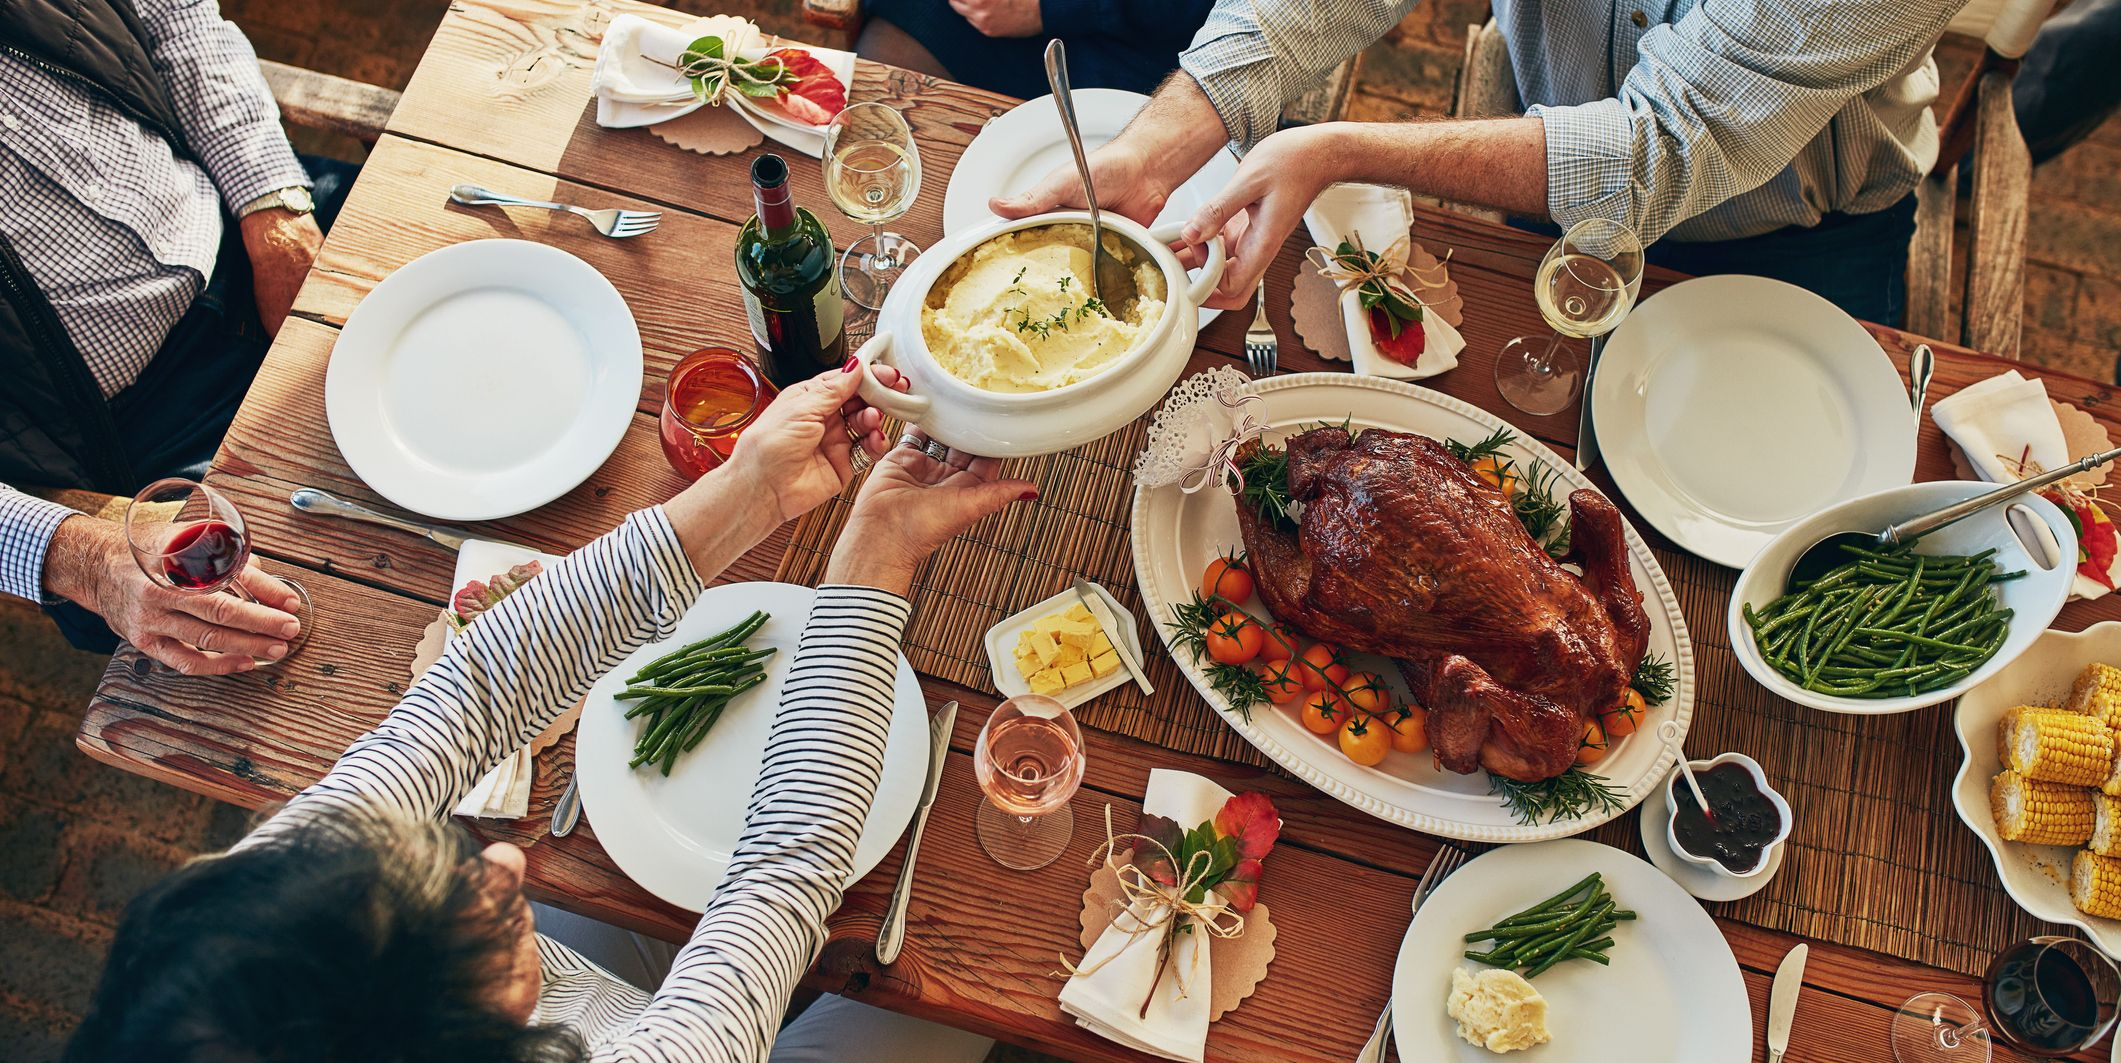 How to Save Hundreds of Calories at Thanksgiving Dinner, According to Nutritionists